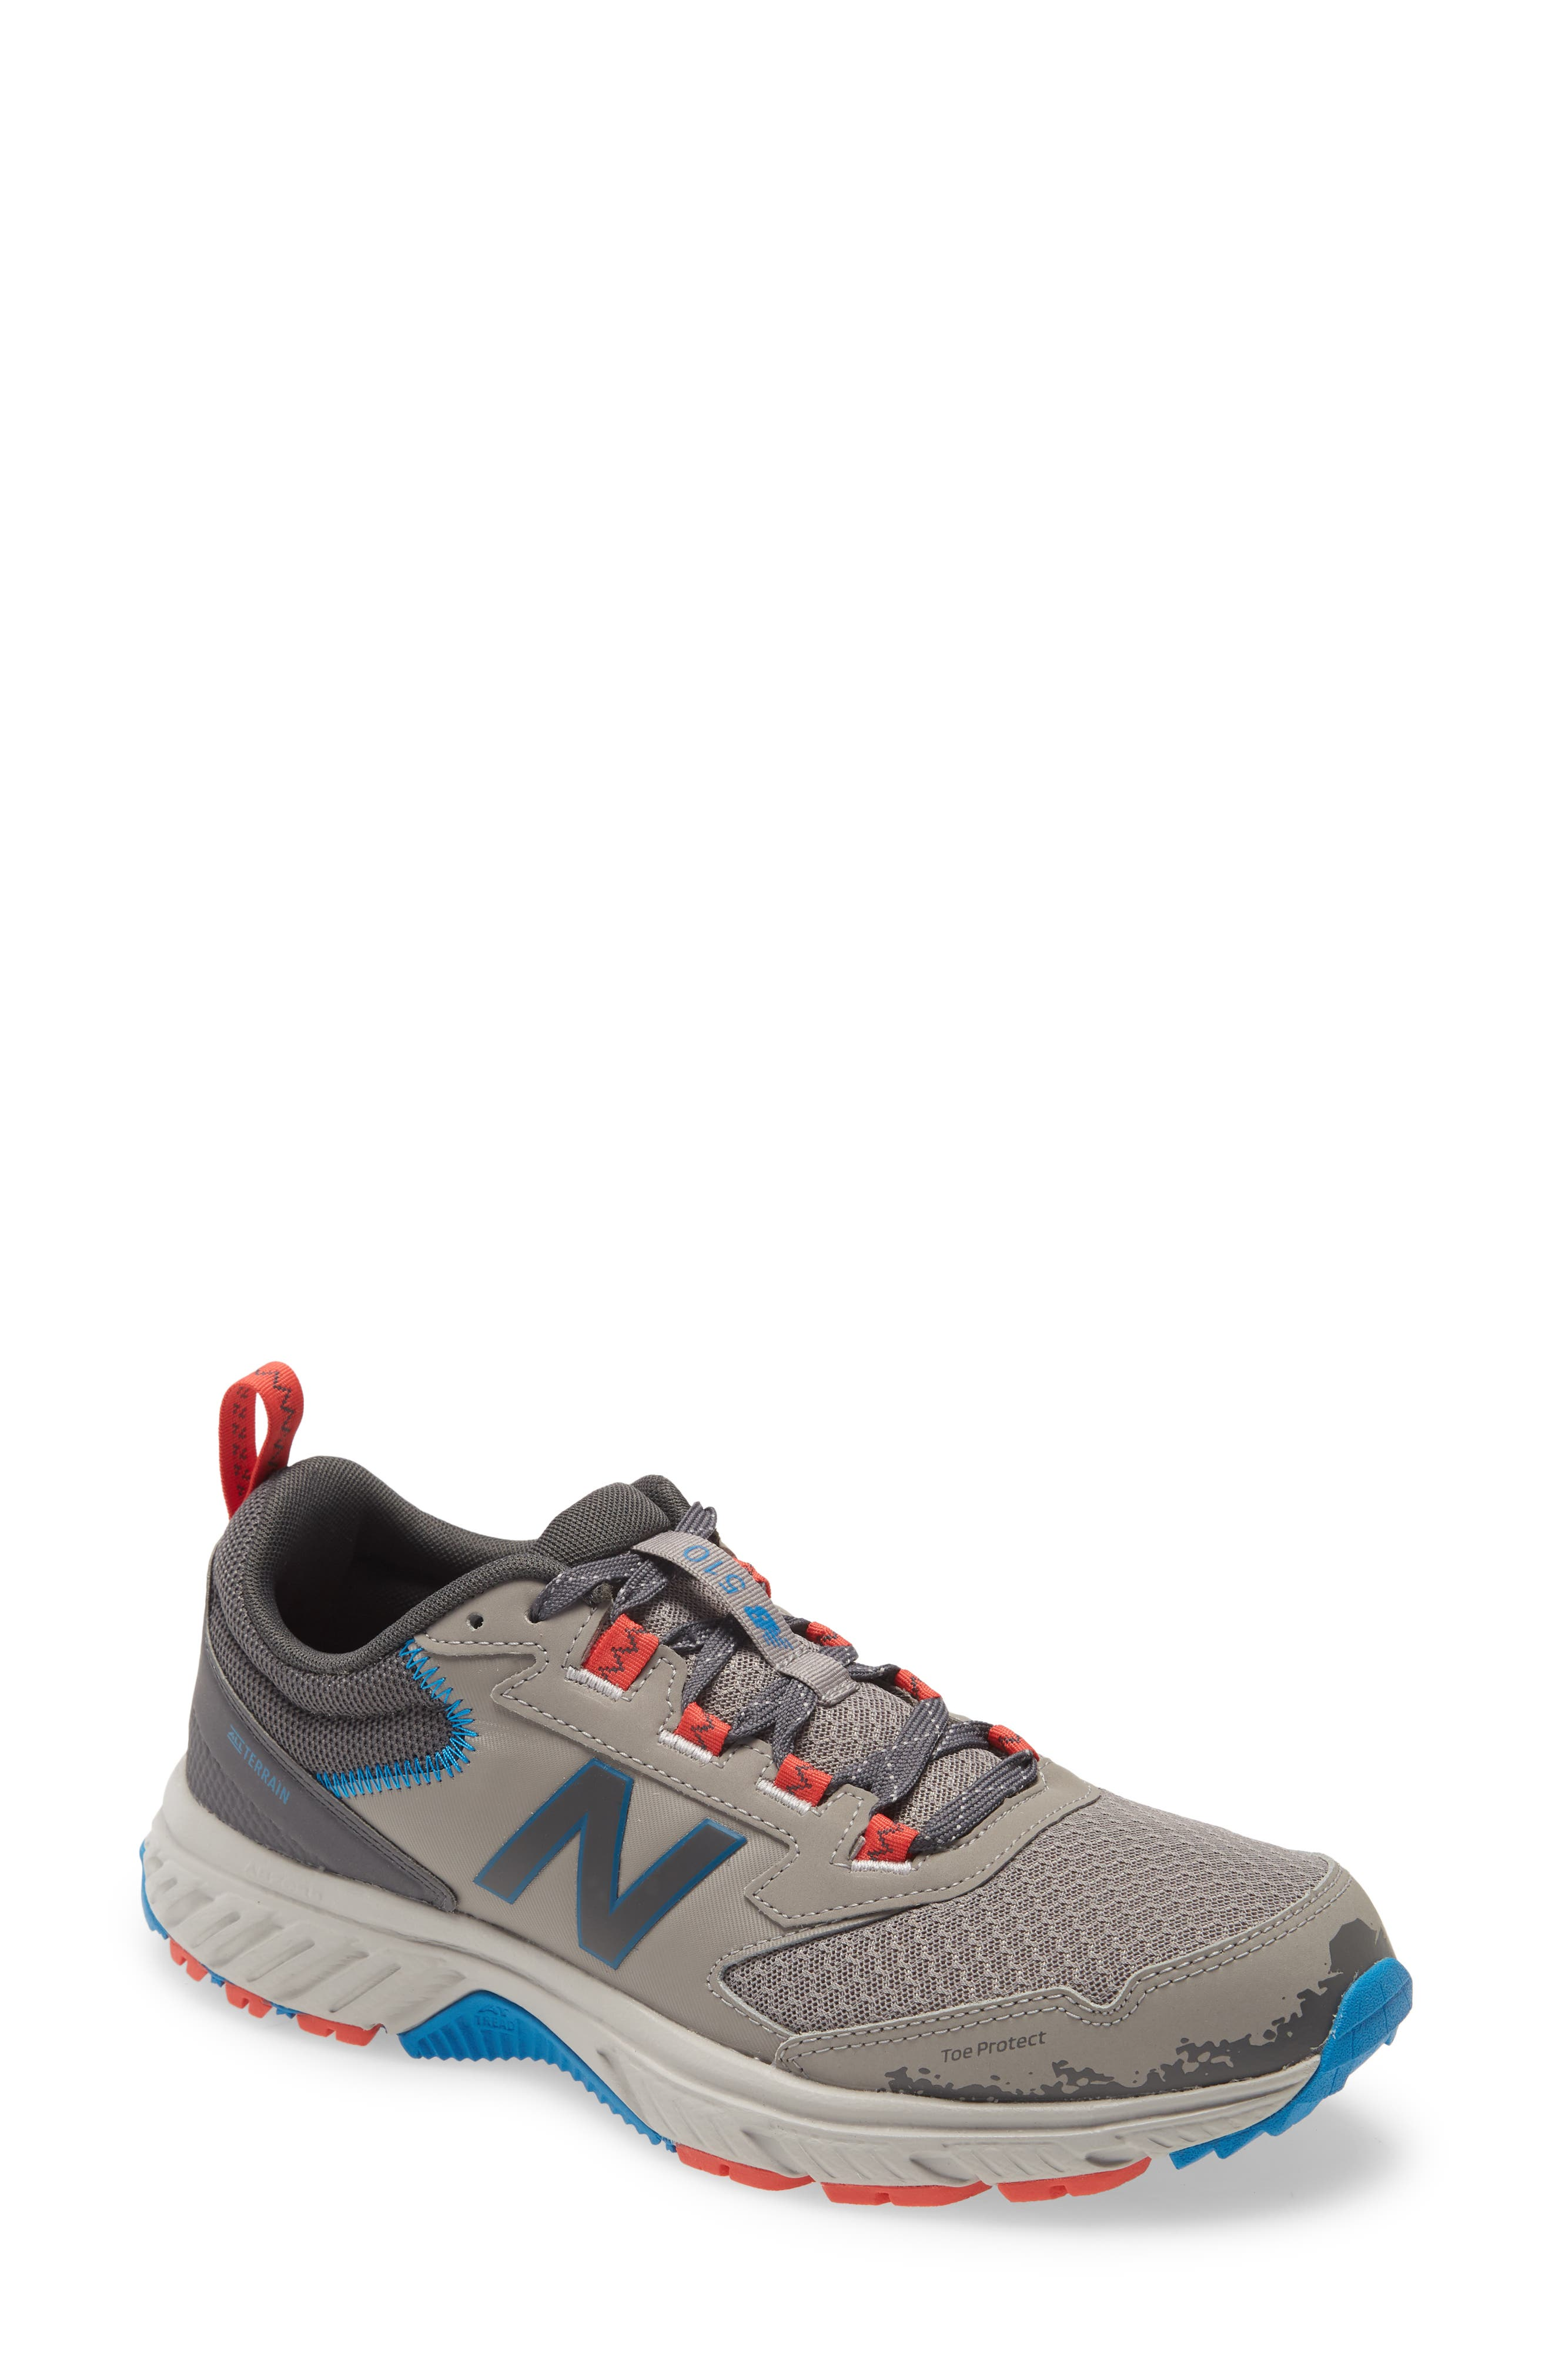 Image of New Balance 510 Trail Running Sneaker